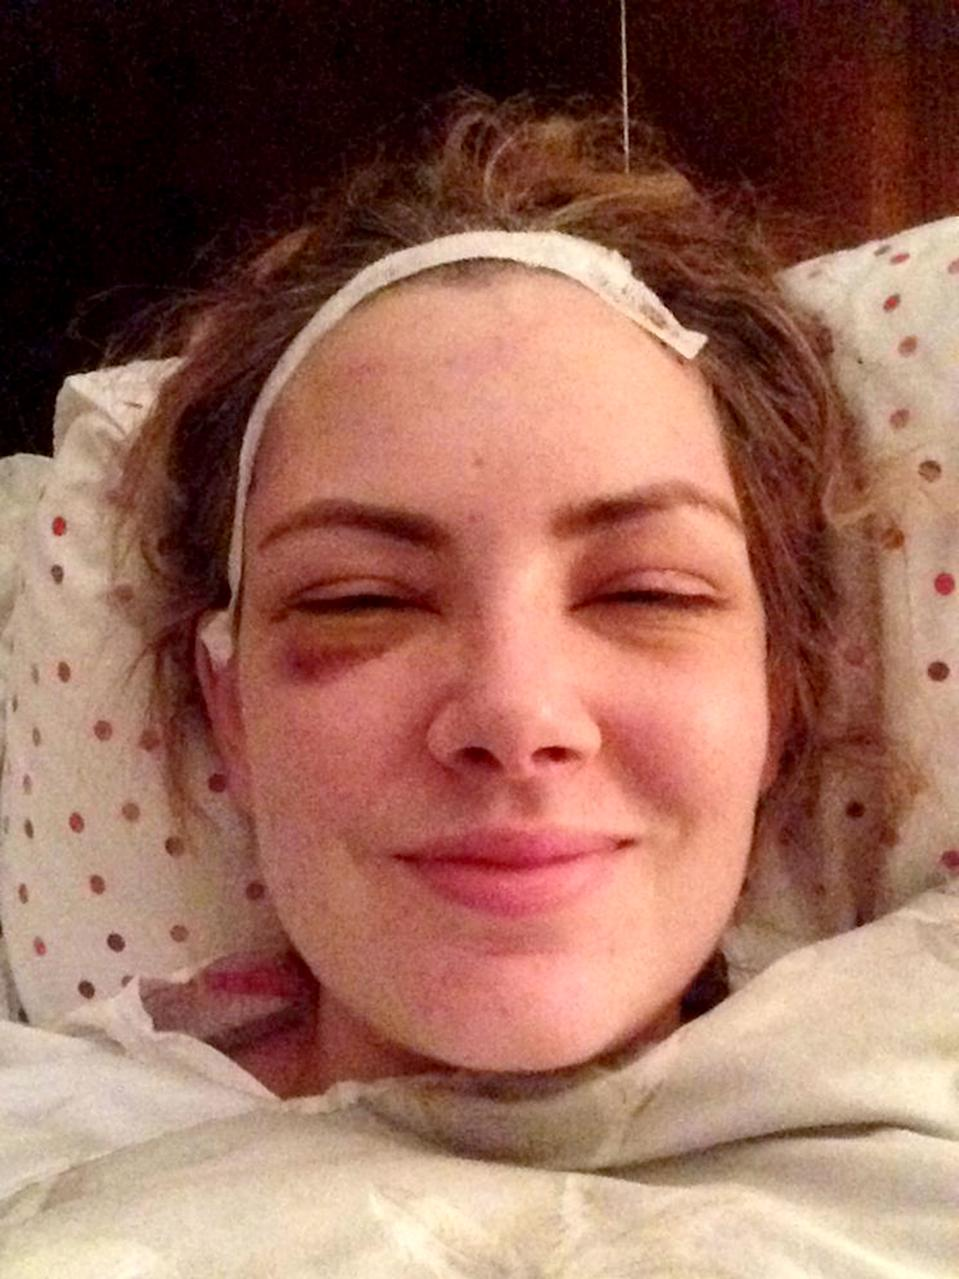 Doctors believe the brain tumour had been present since Emily was around 18 [Photo: Caters]